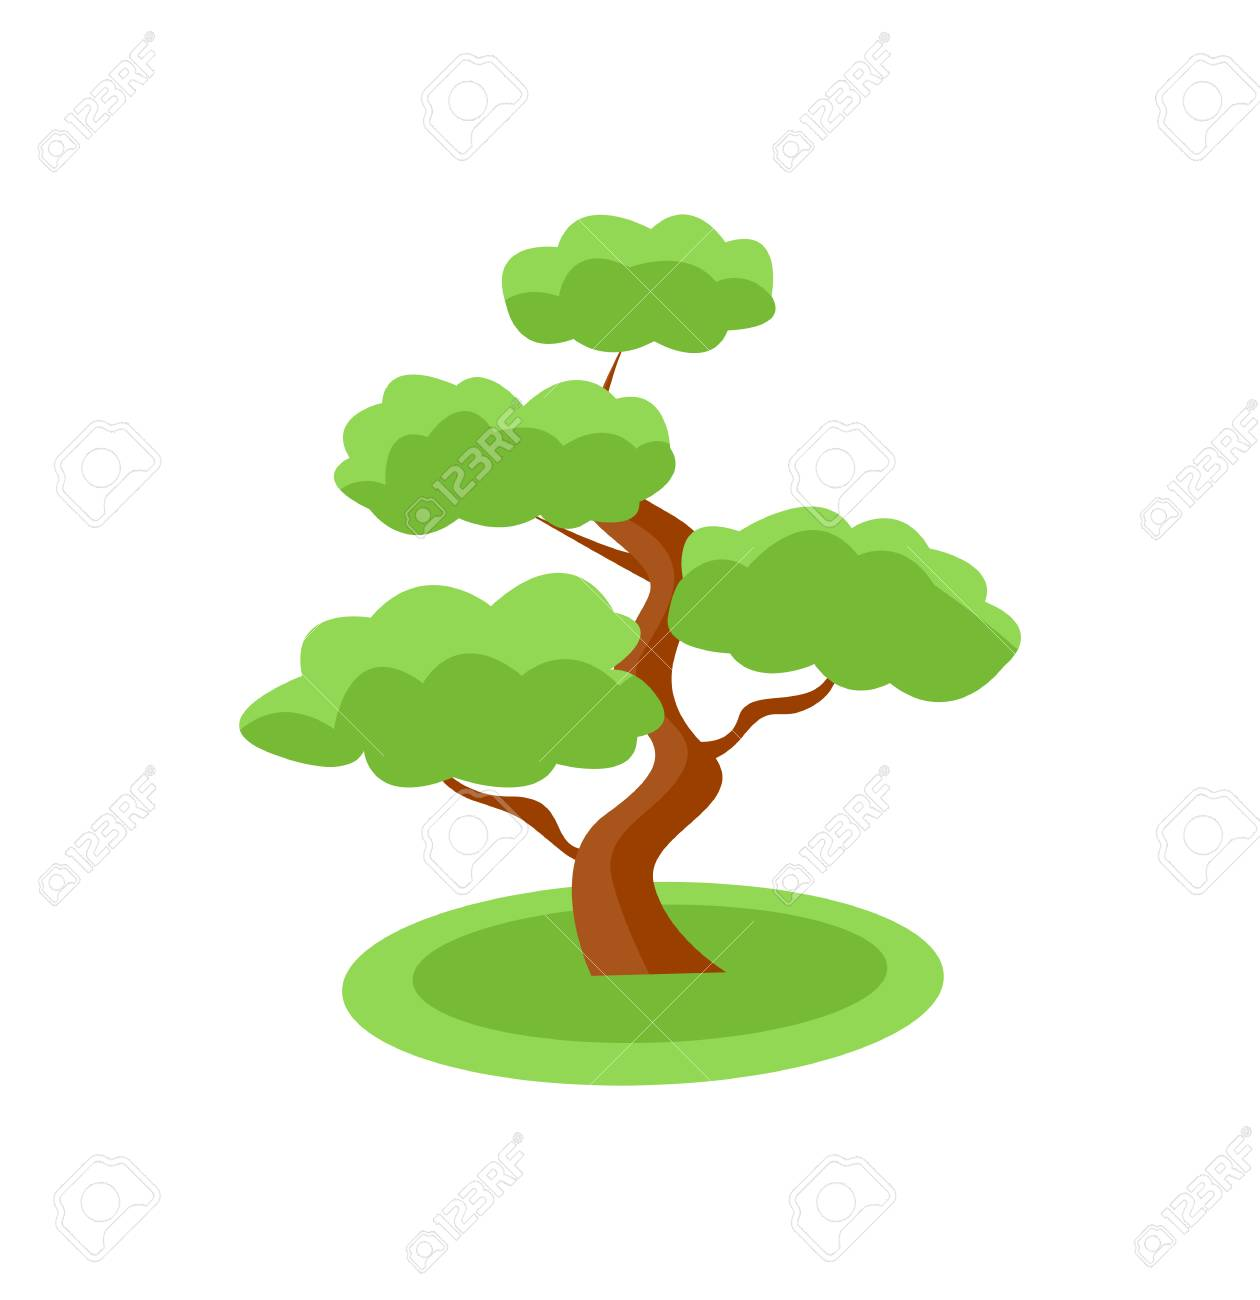 Vector Bonsai Tree Icon Symbol Illustration Royalty Free Cliparts Vectors And Stock Illustration Image 96329784